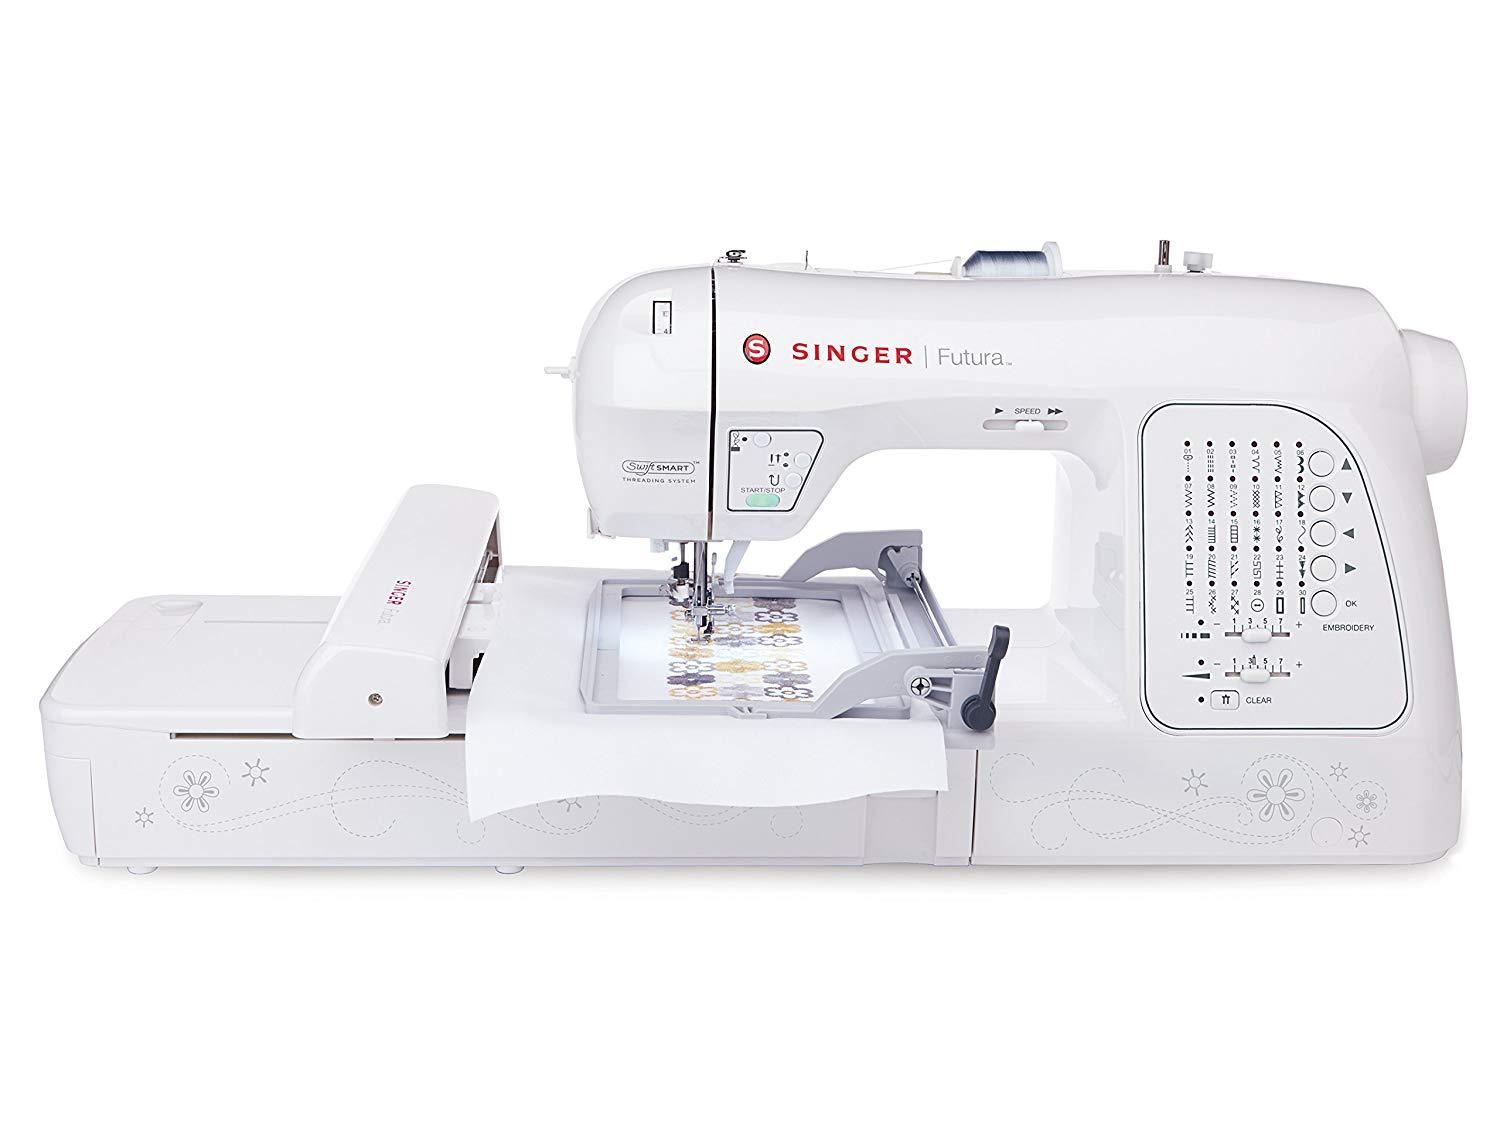 Singer Futura XL580 - Sewing & Embroidery Machine with Free Software - Good as New